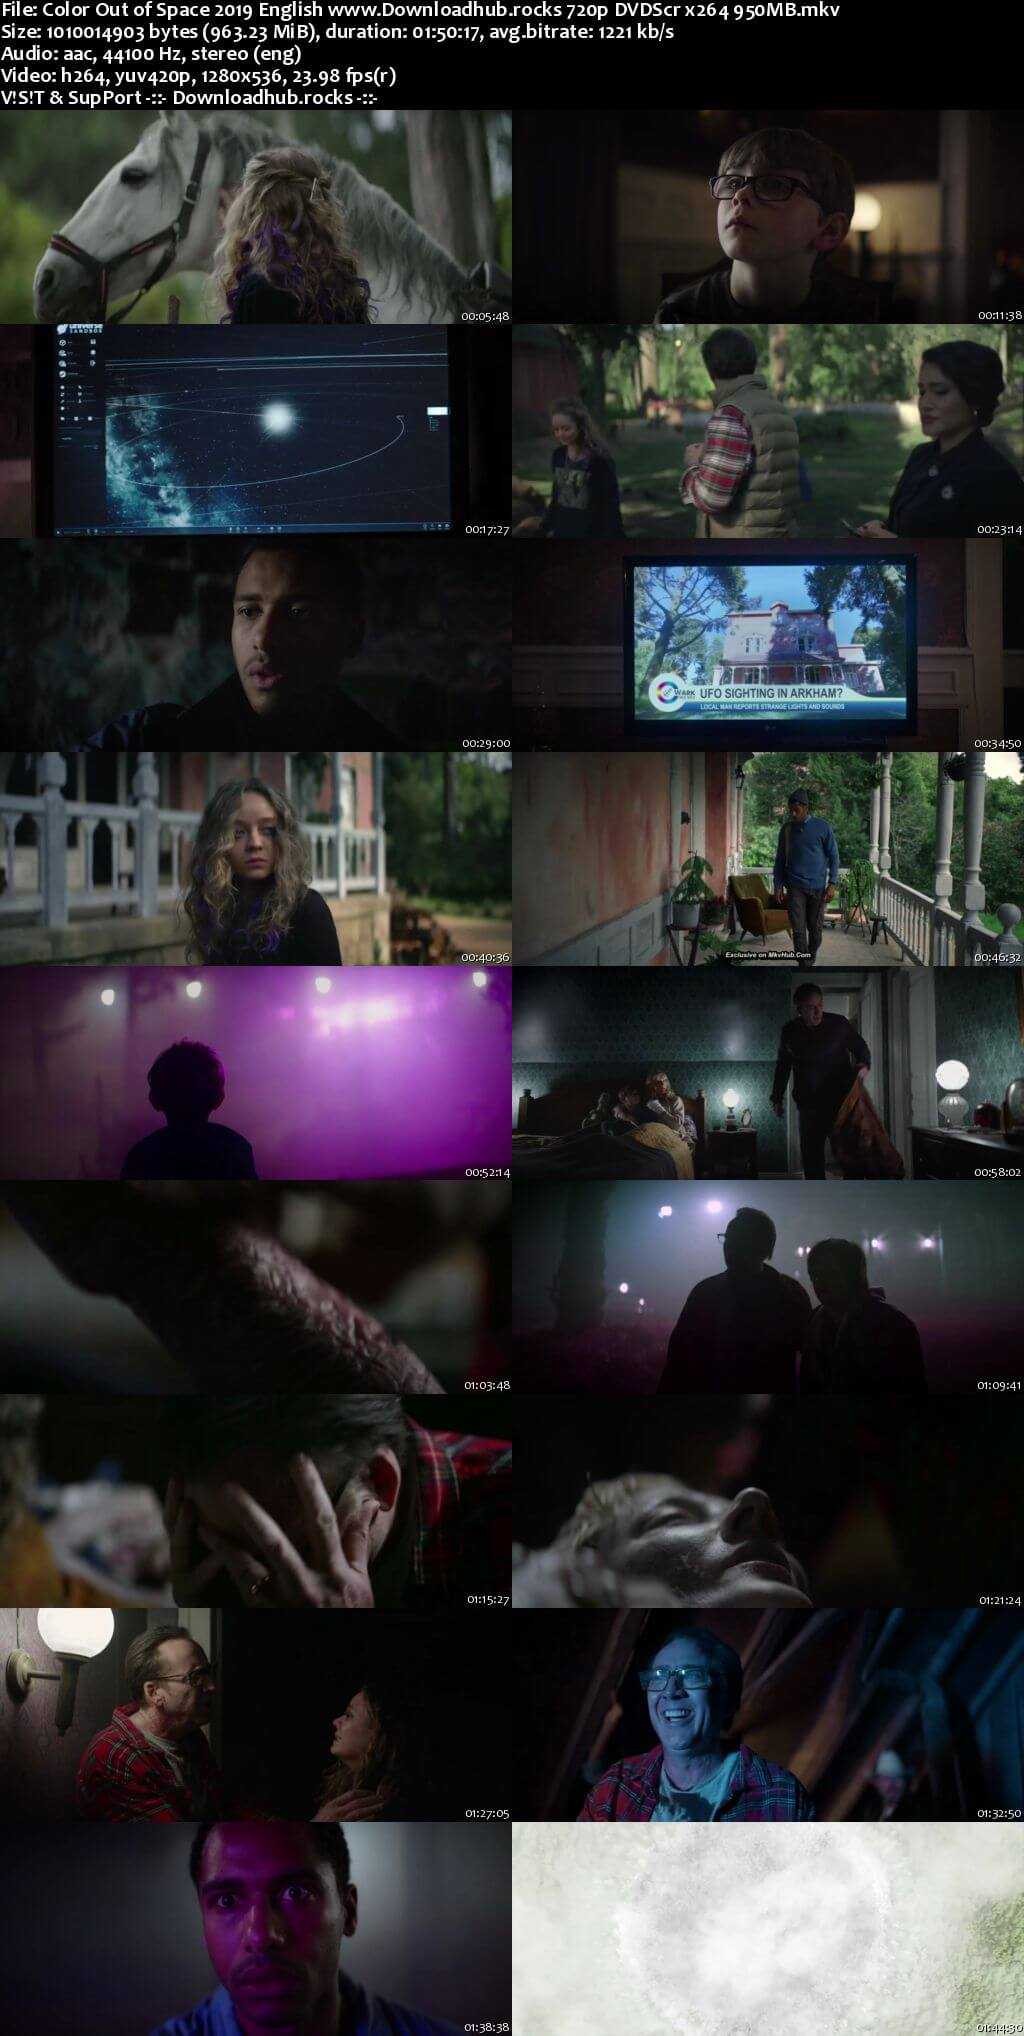 Color Out of Space 2019 English 720p DVDScr 950MB